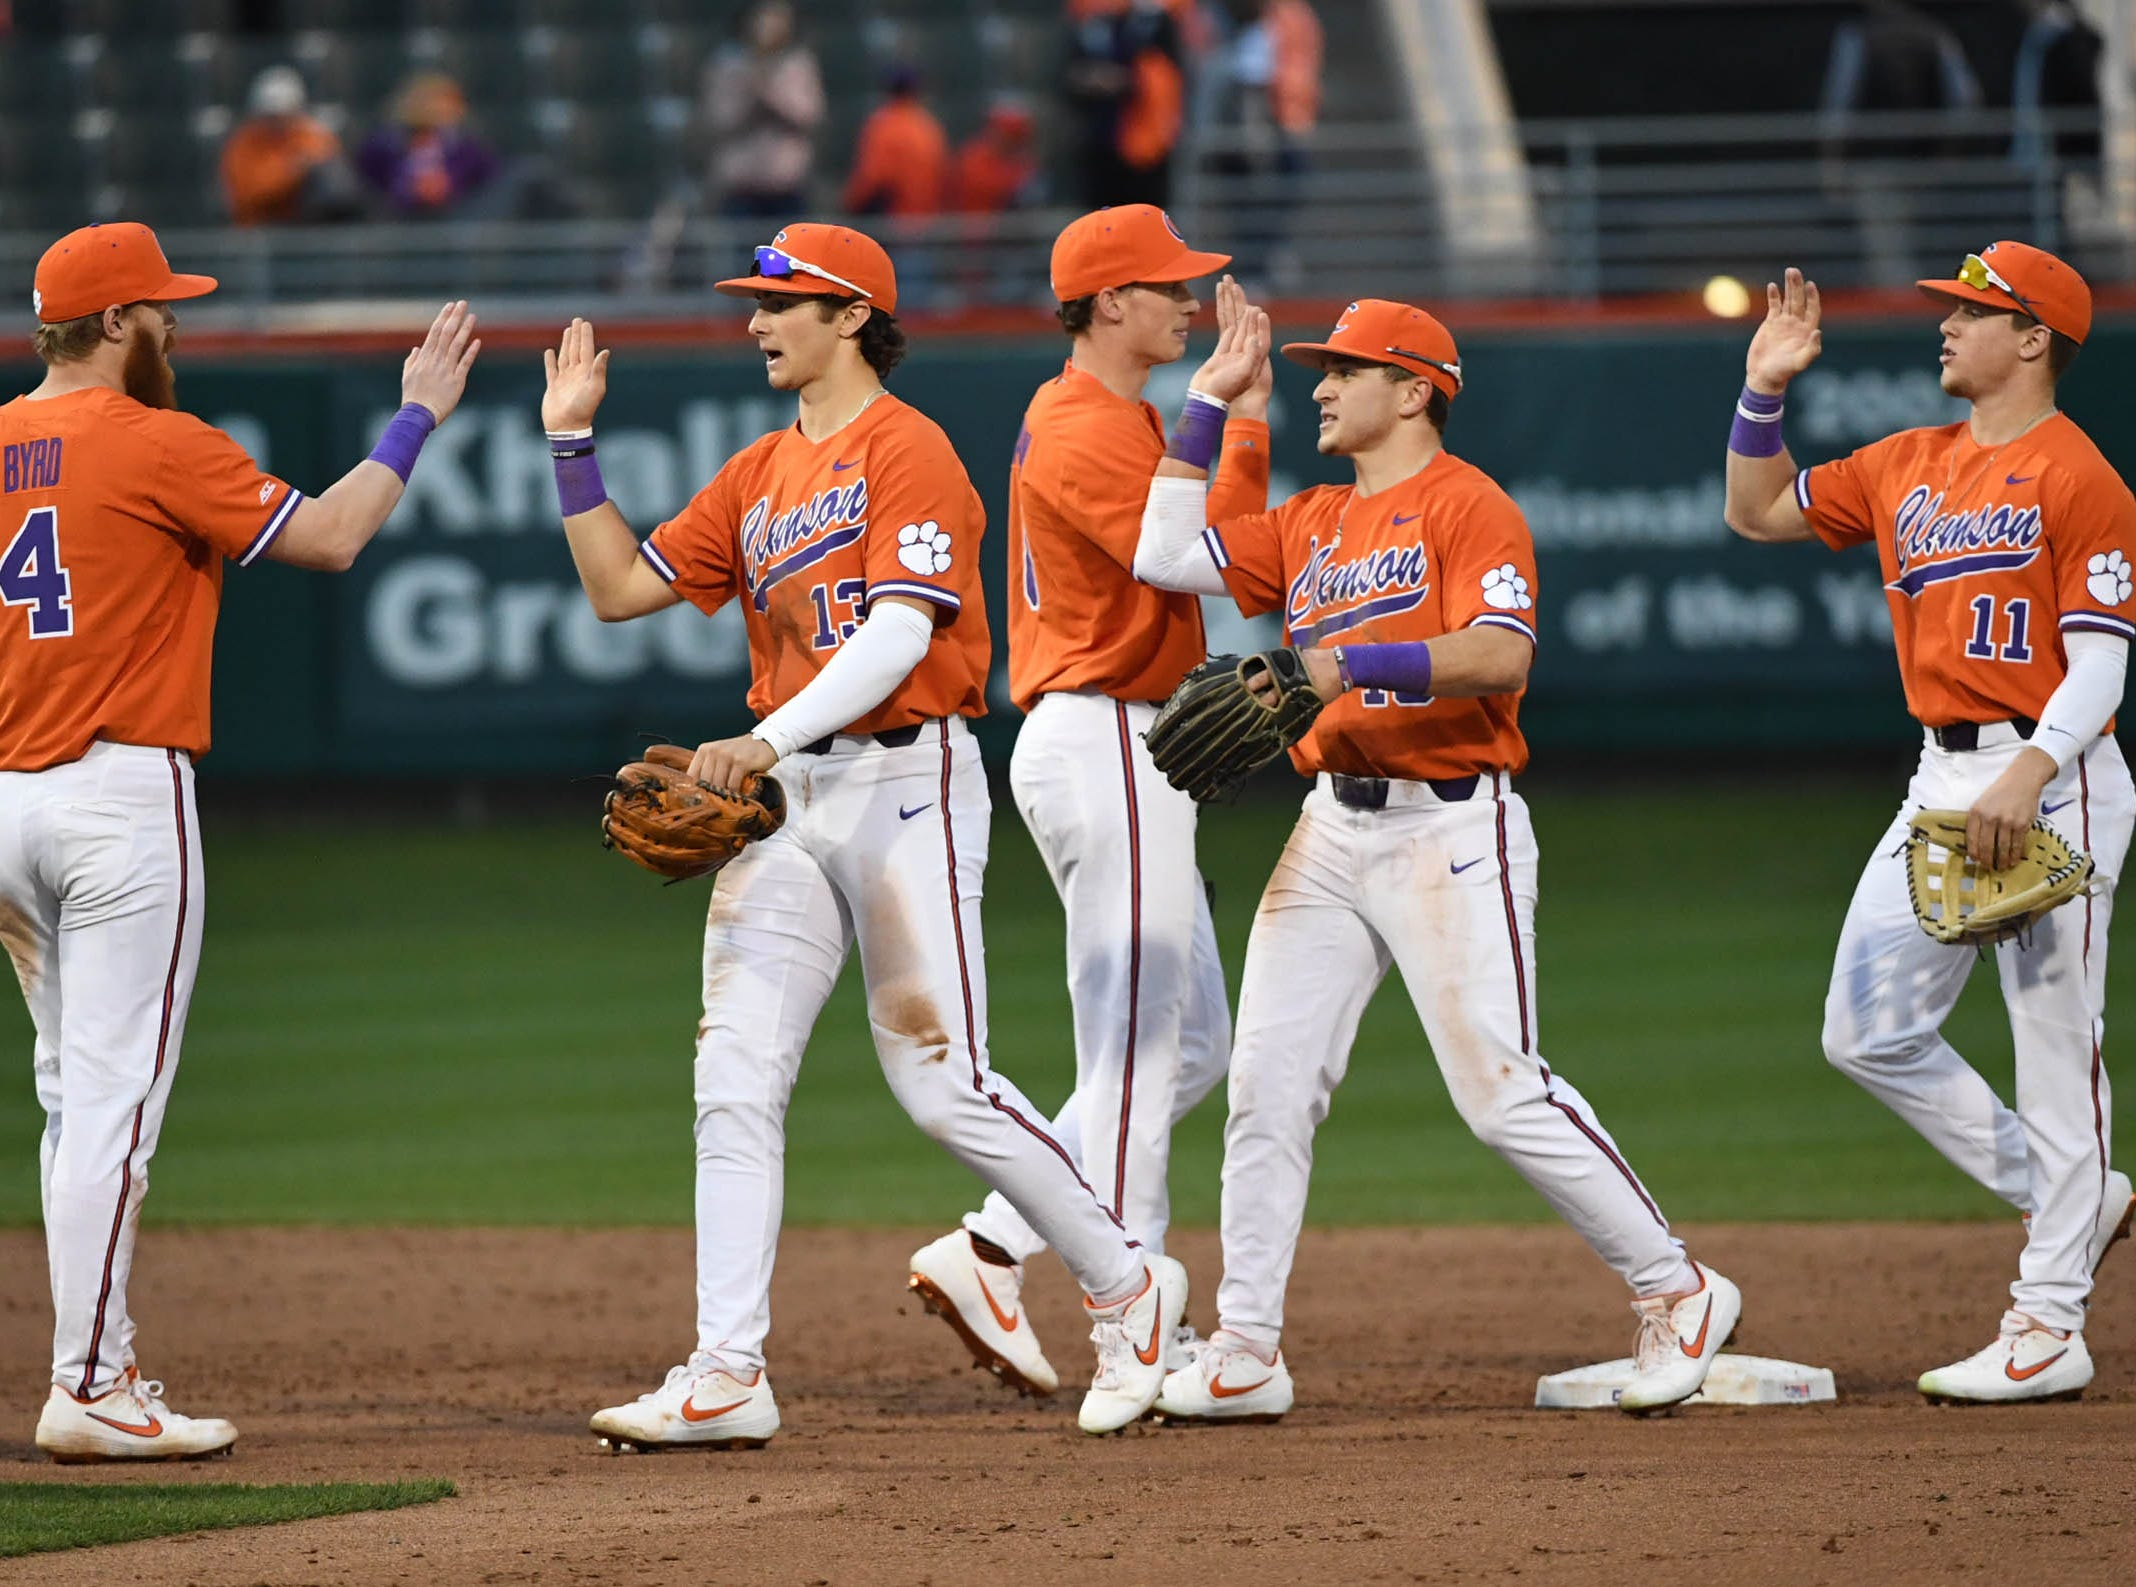 Clemson players celebrate a 6-2 win over South Alabama in the season opener at Doug Kingsmore Stadium in Clemson Friday, February 15, 2019.